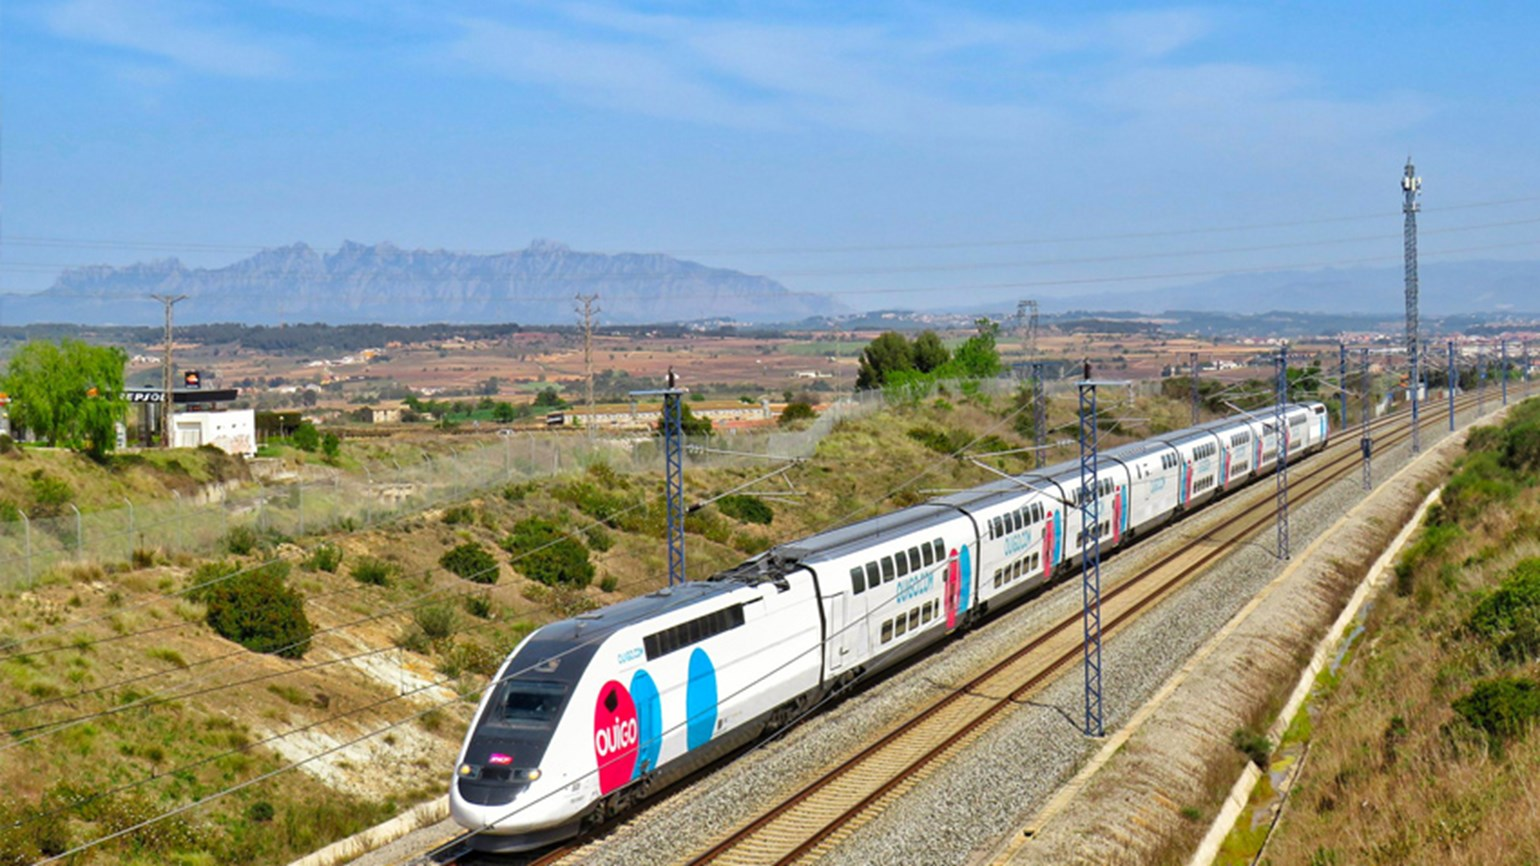 rail train ouigo services spain